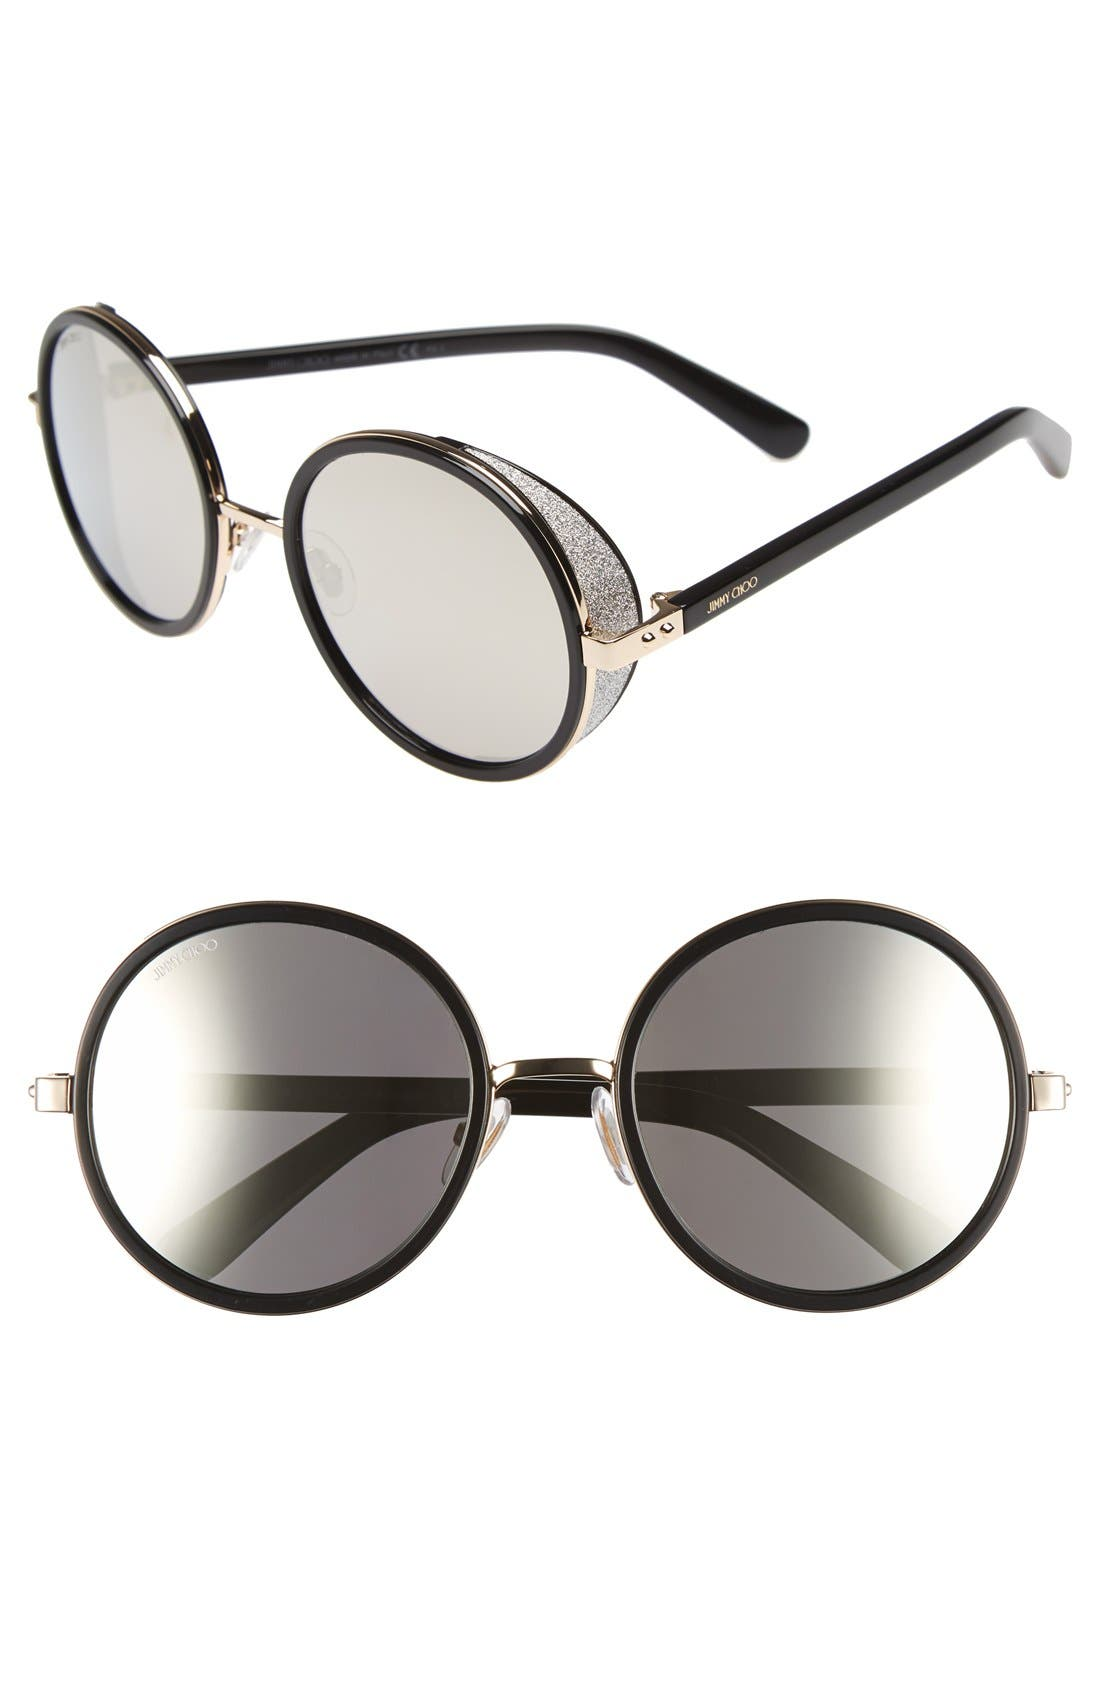 JIMMY CHOO 'Andies' 54mm Round Sunglasses, Main, color, 711